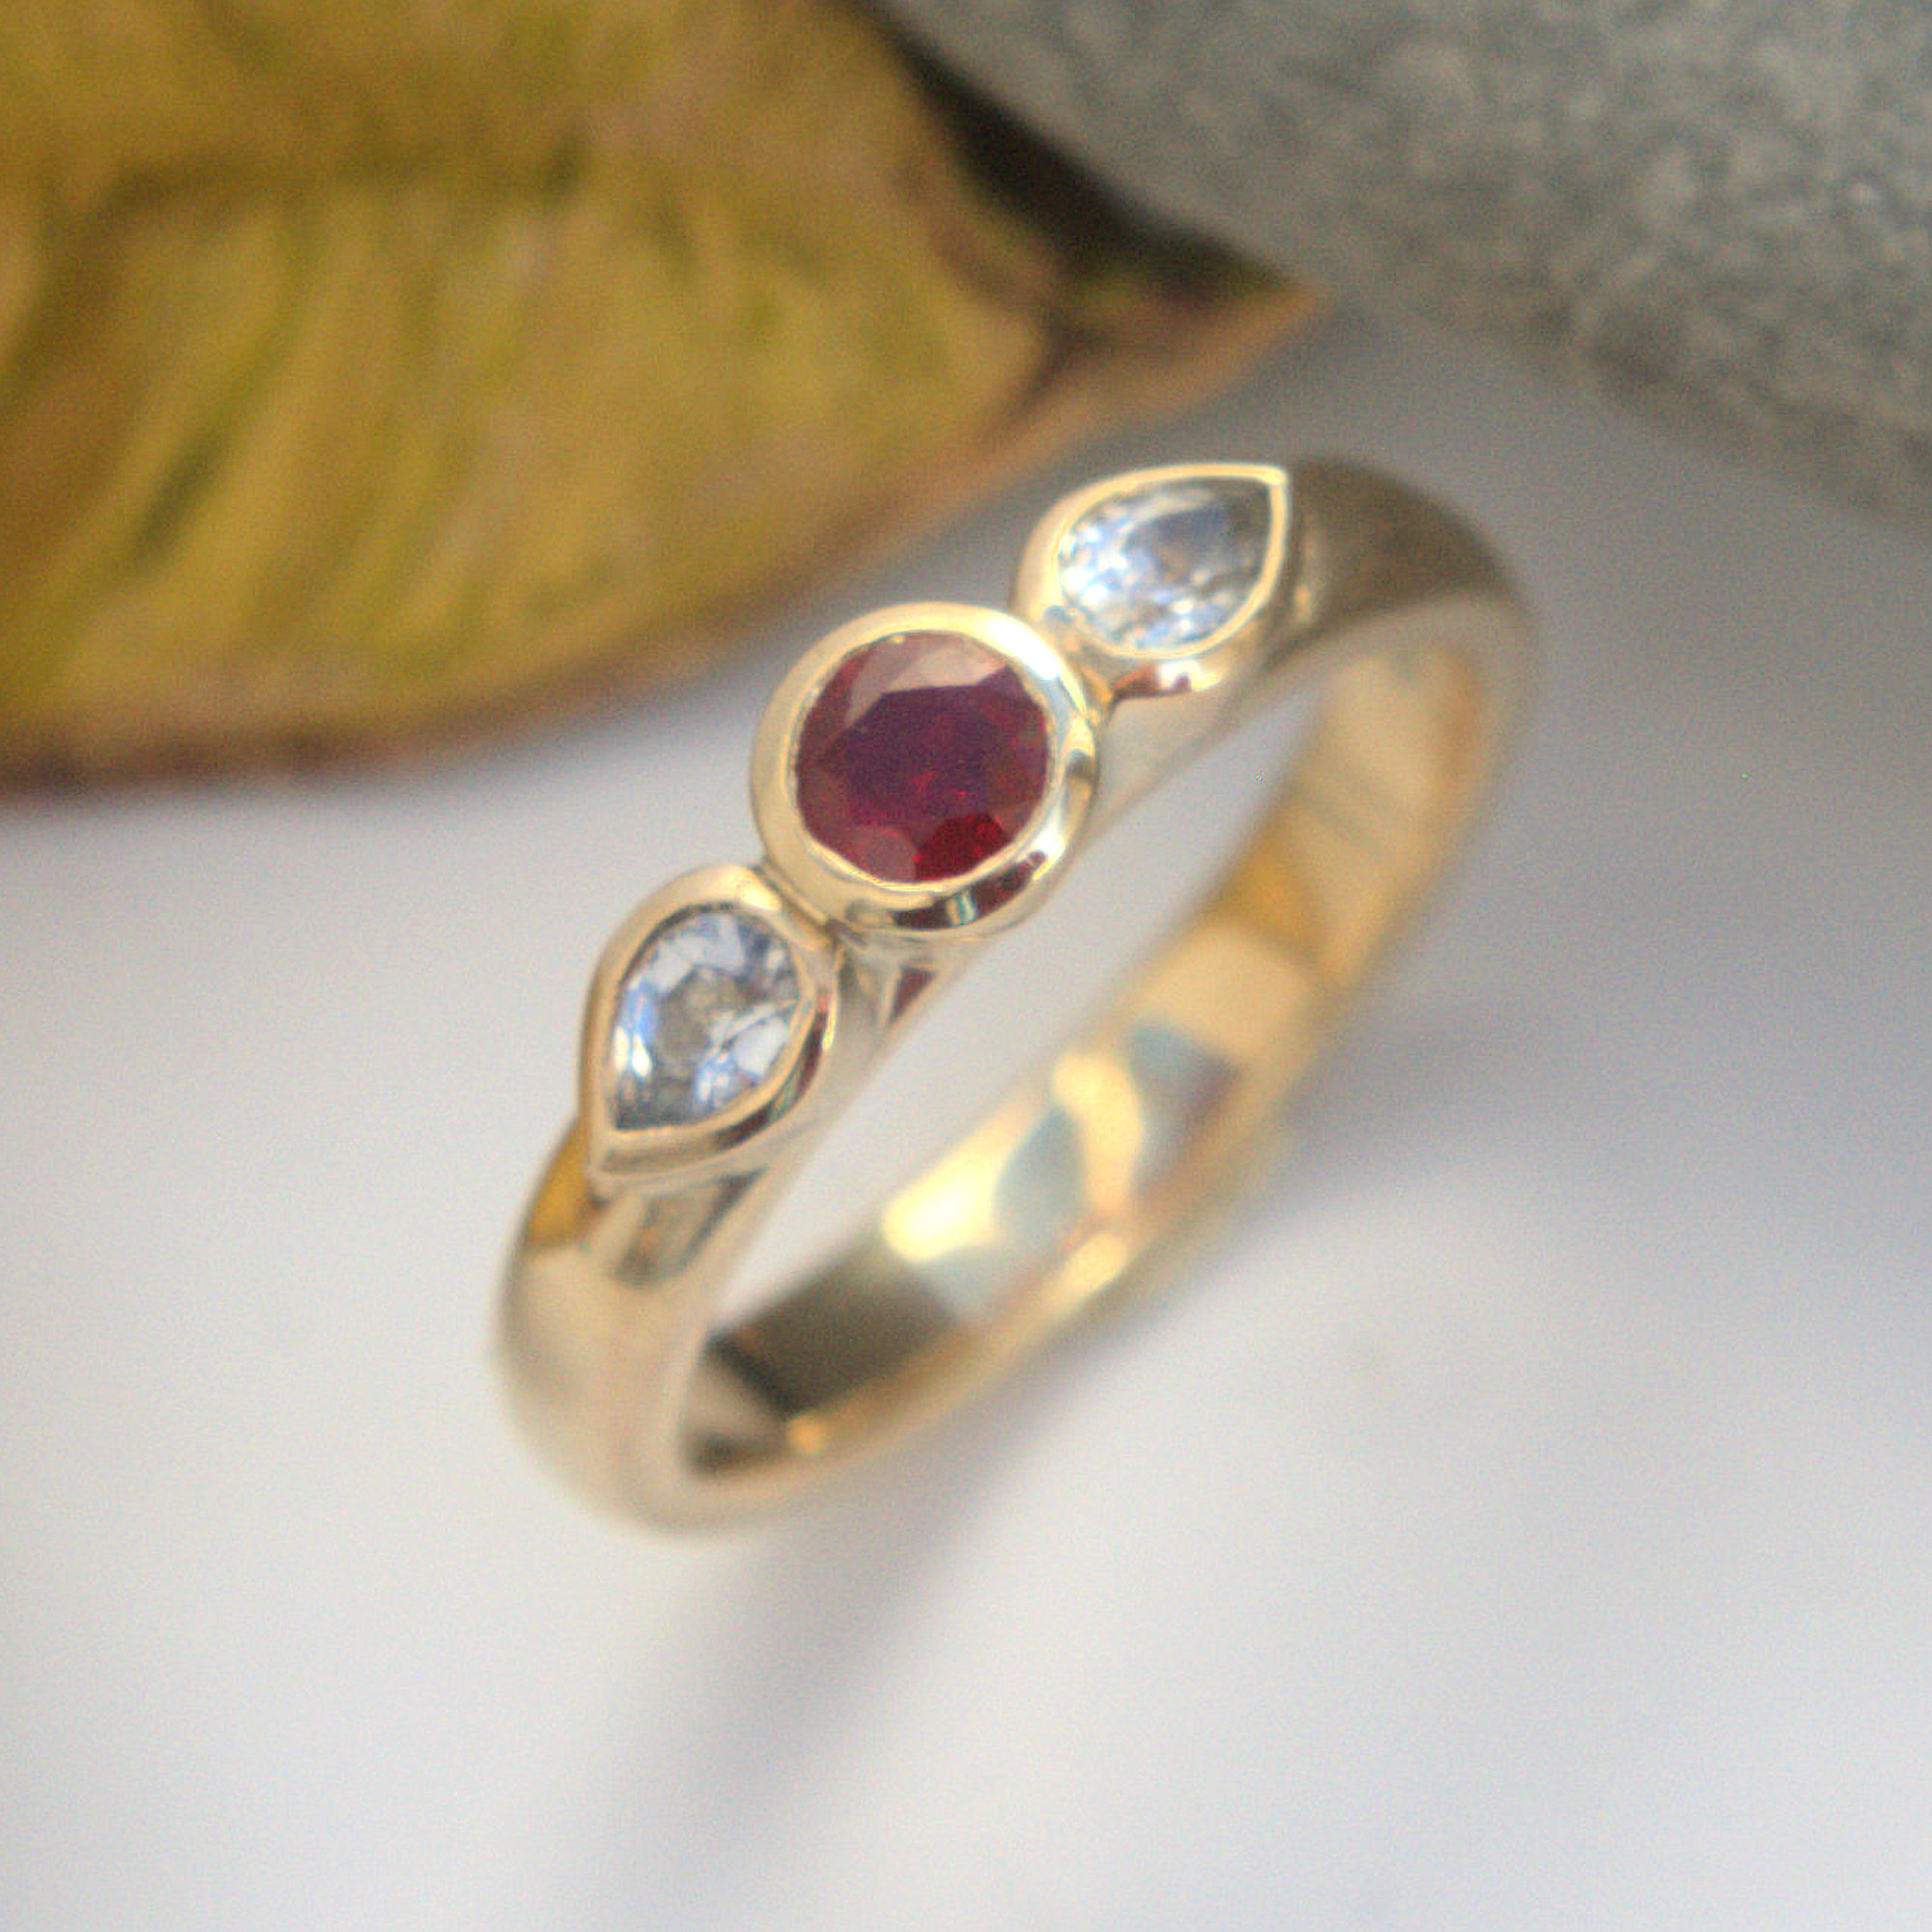 Ruby and white sapphire ring